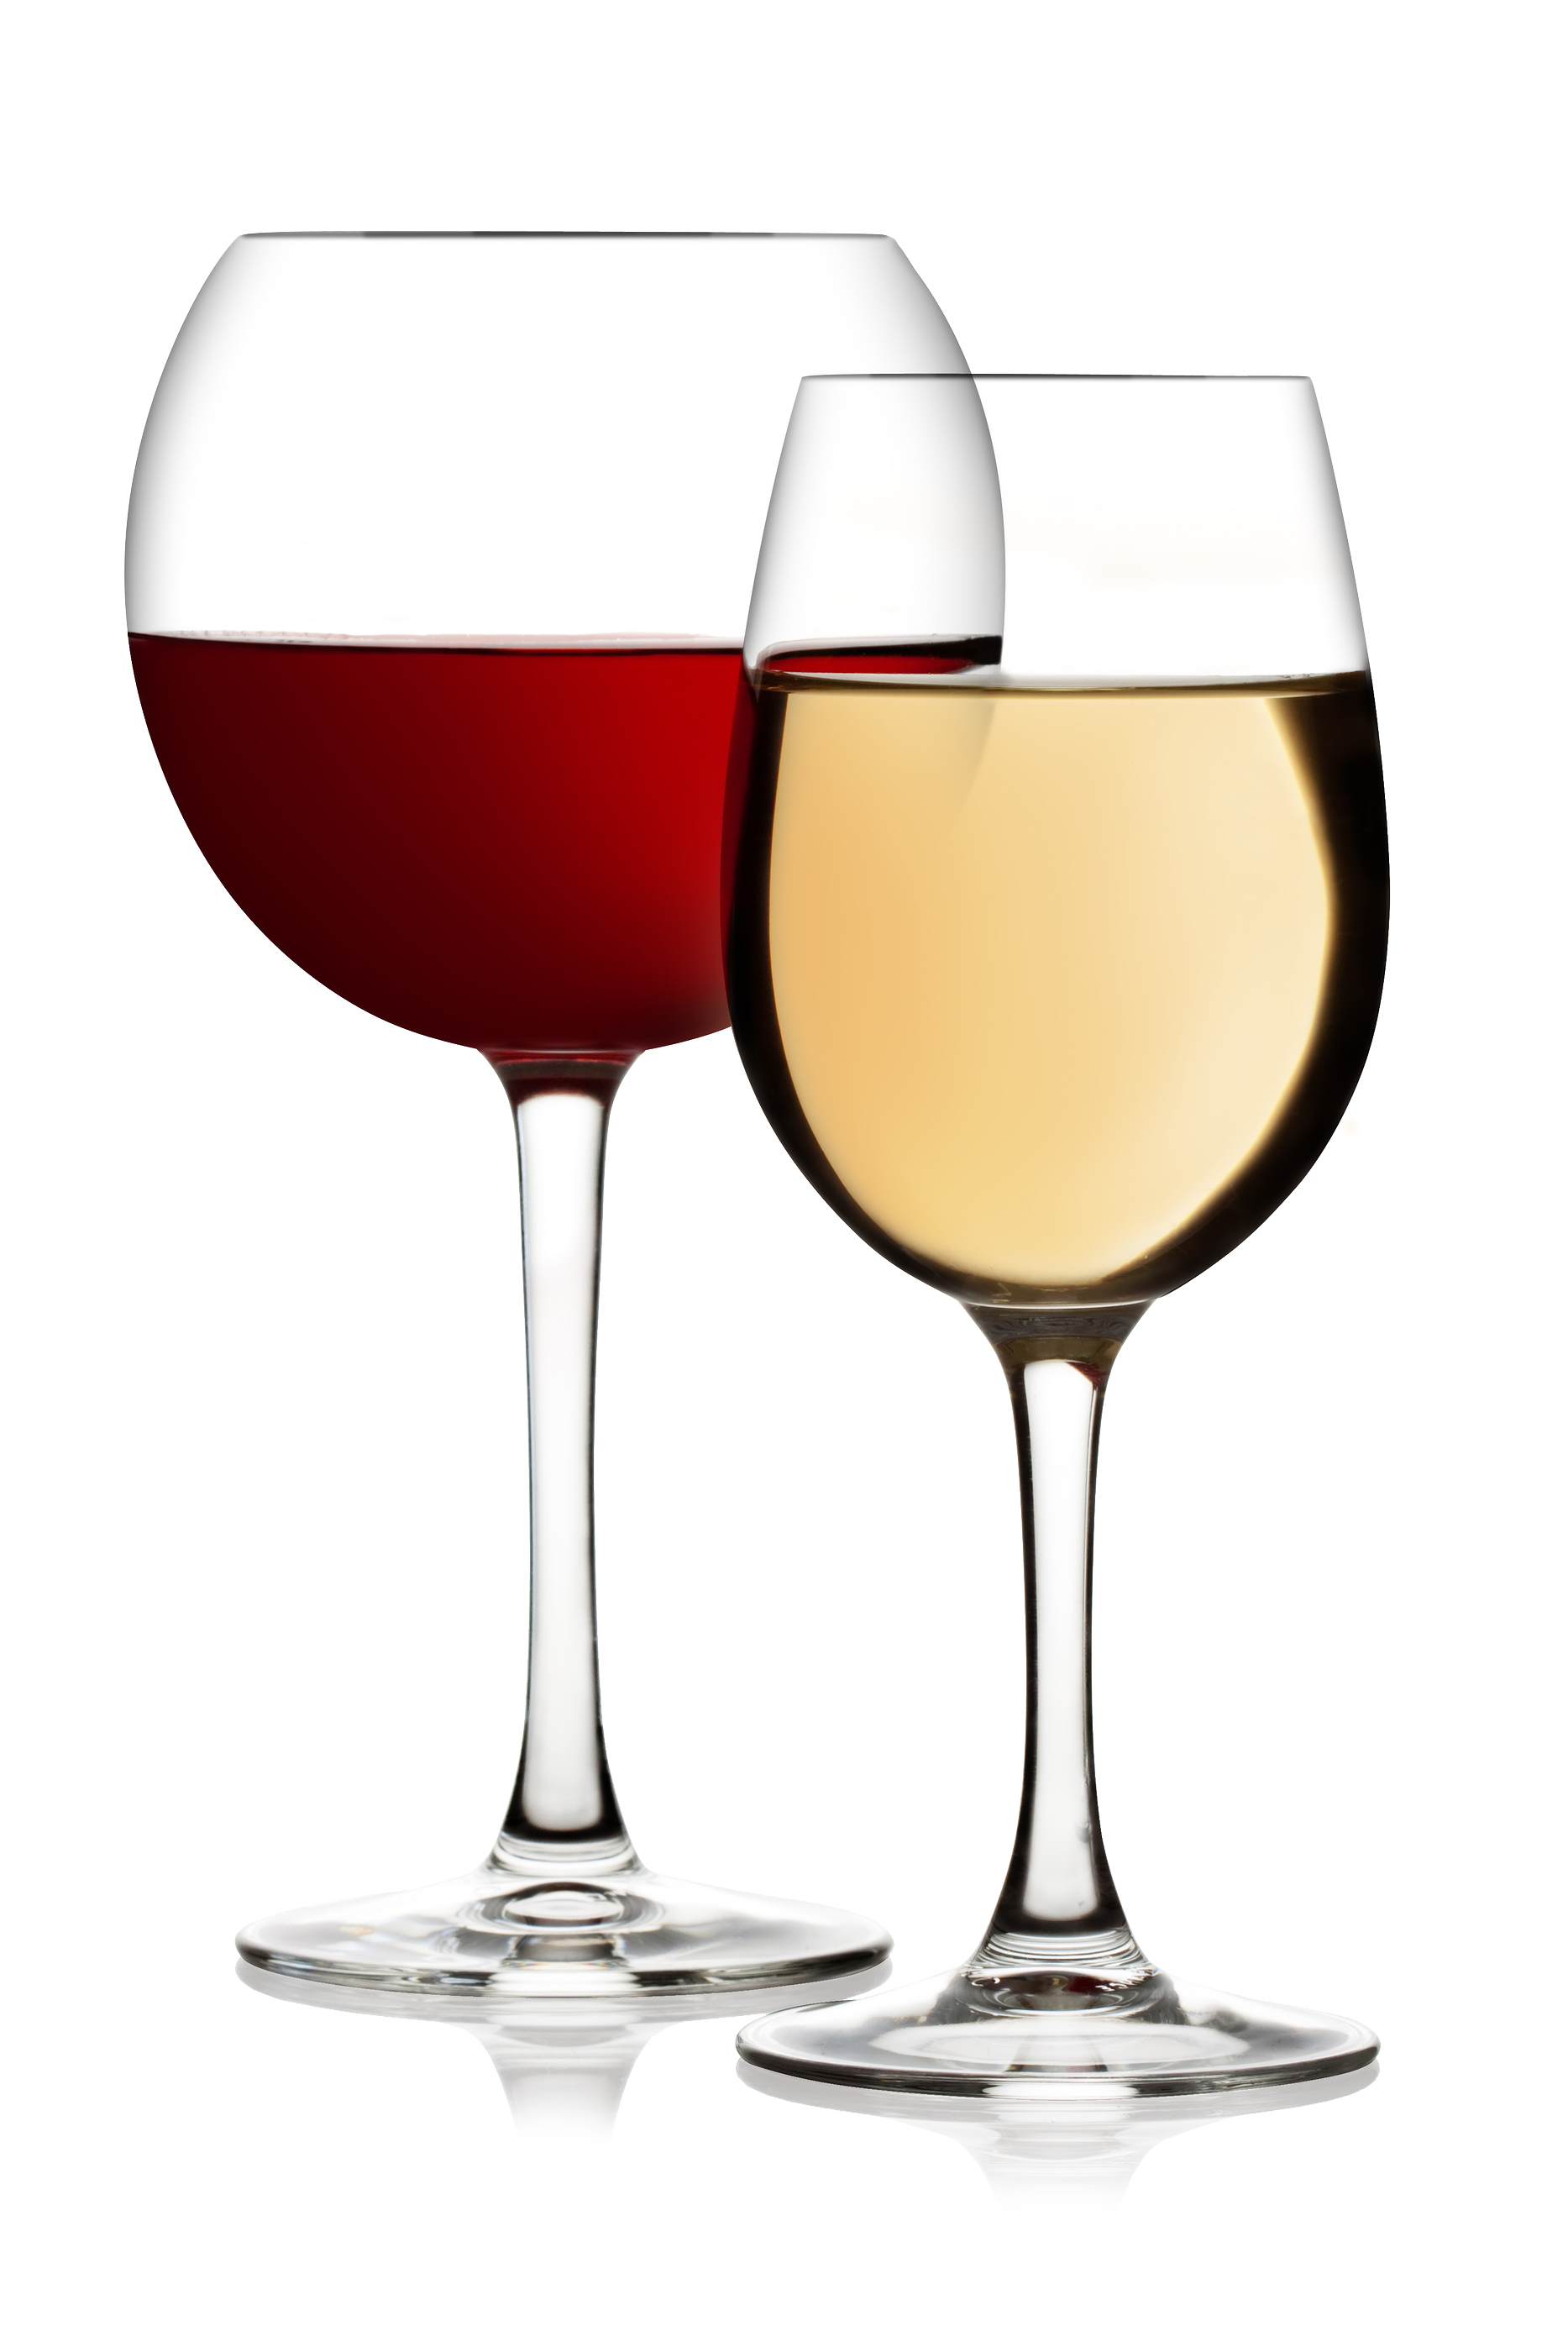 Wine images clipart png library download Wine Glasses (Set of 2) png library download